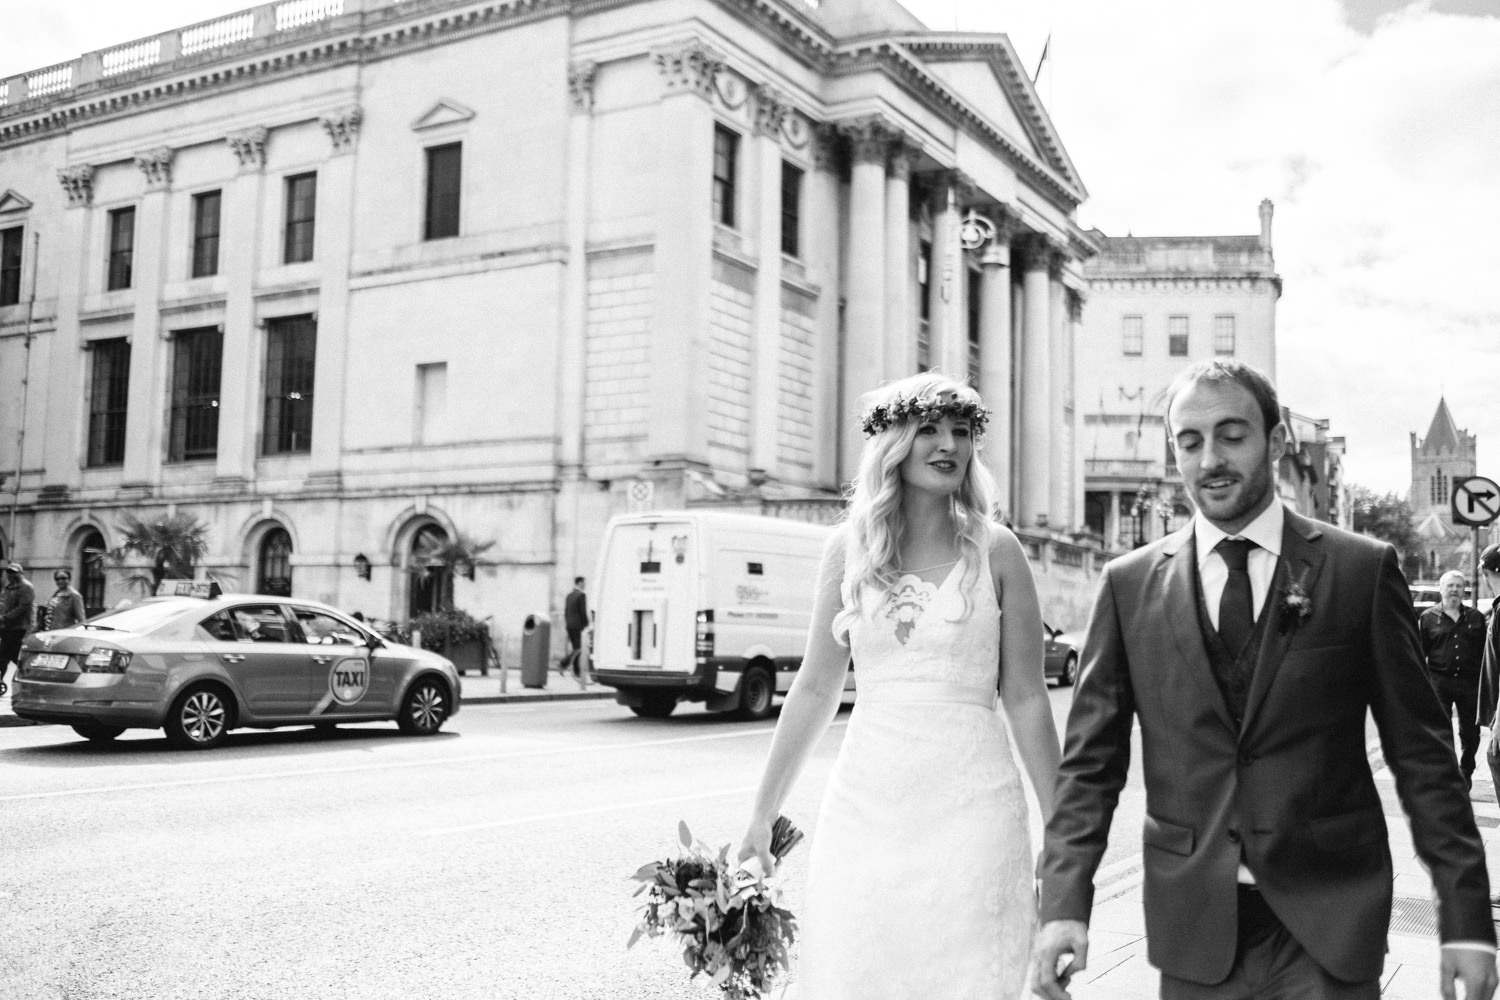 documentary wedding by fujifilm xpro2 photographer david mcclell